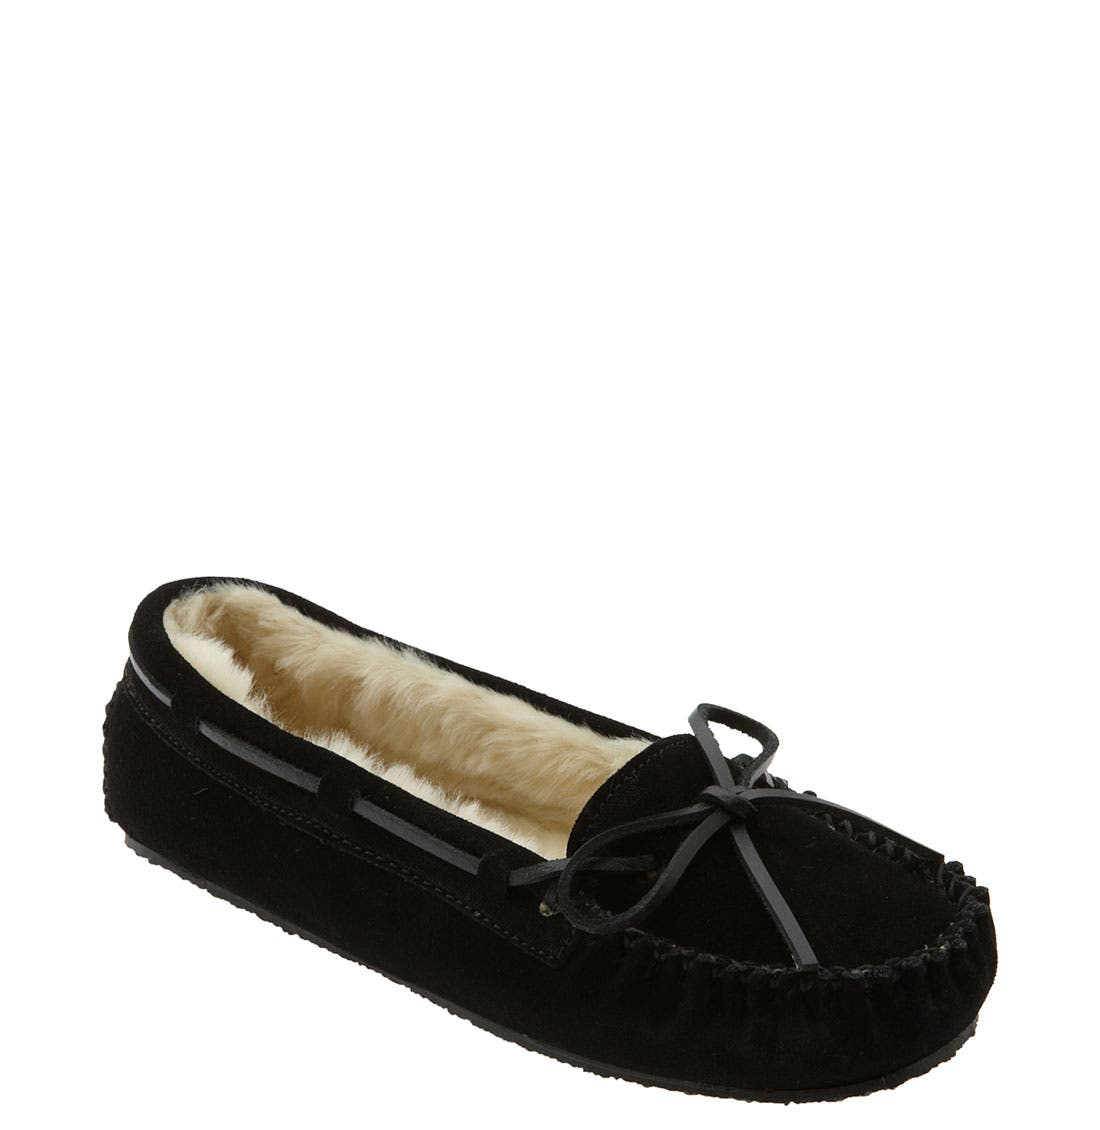 'Cally' Slipper,                         Main,                         color, BLACK SUEDE